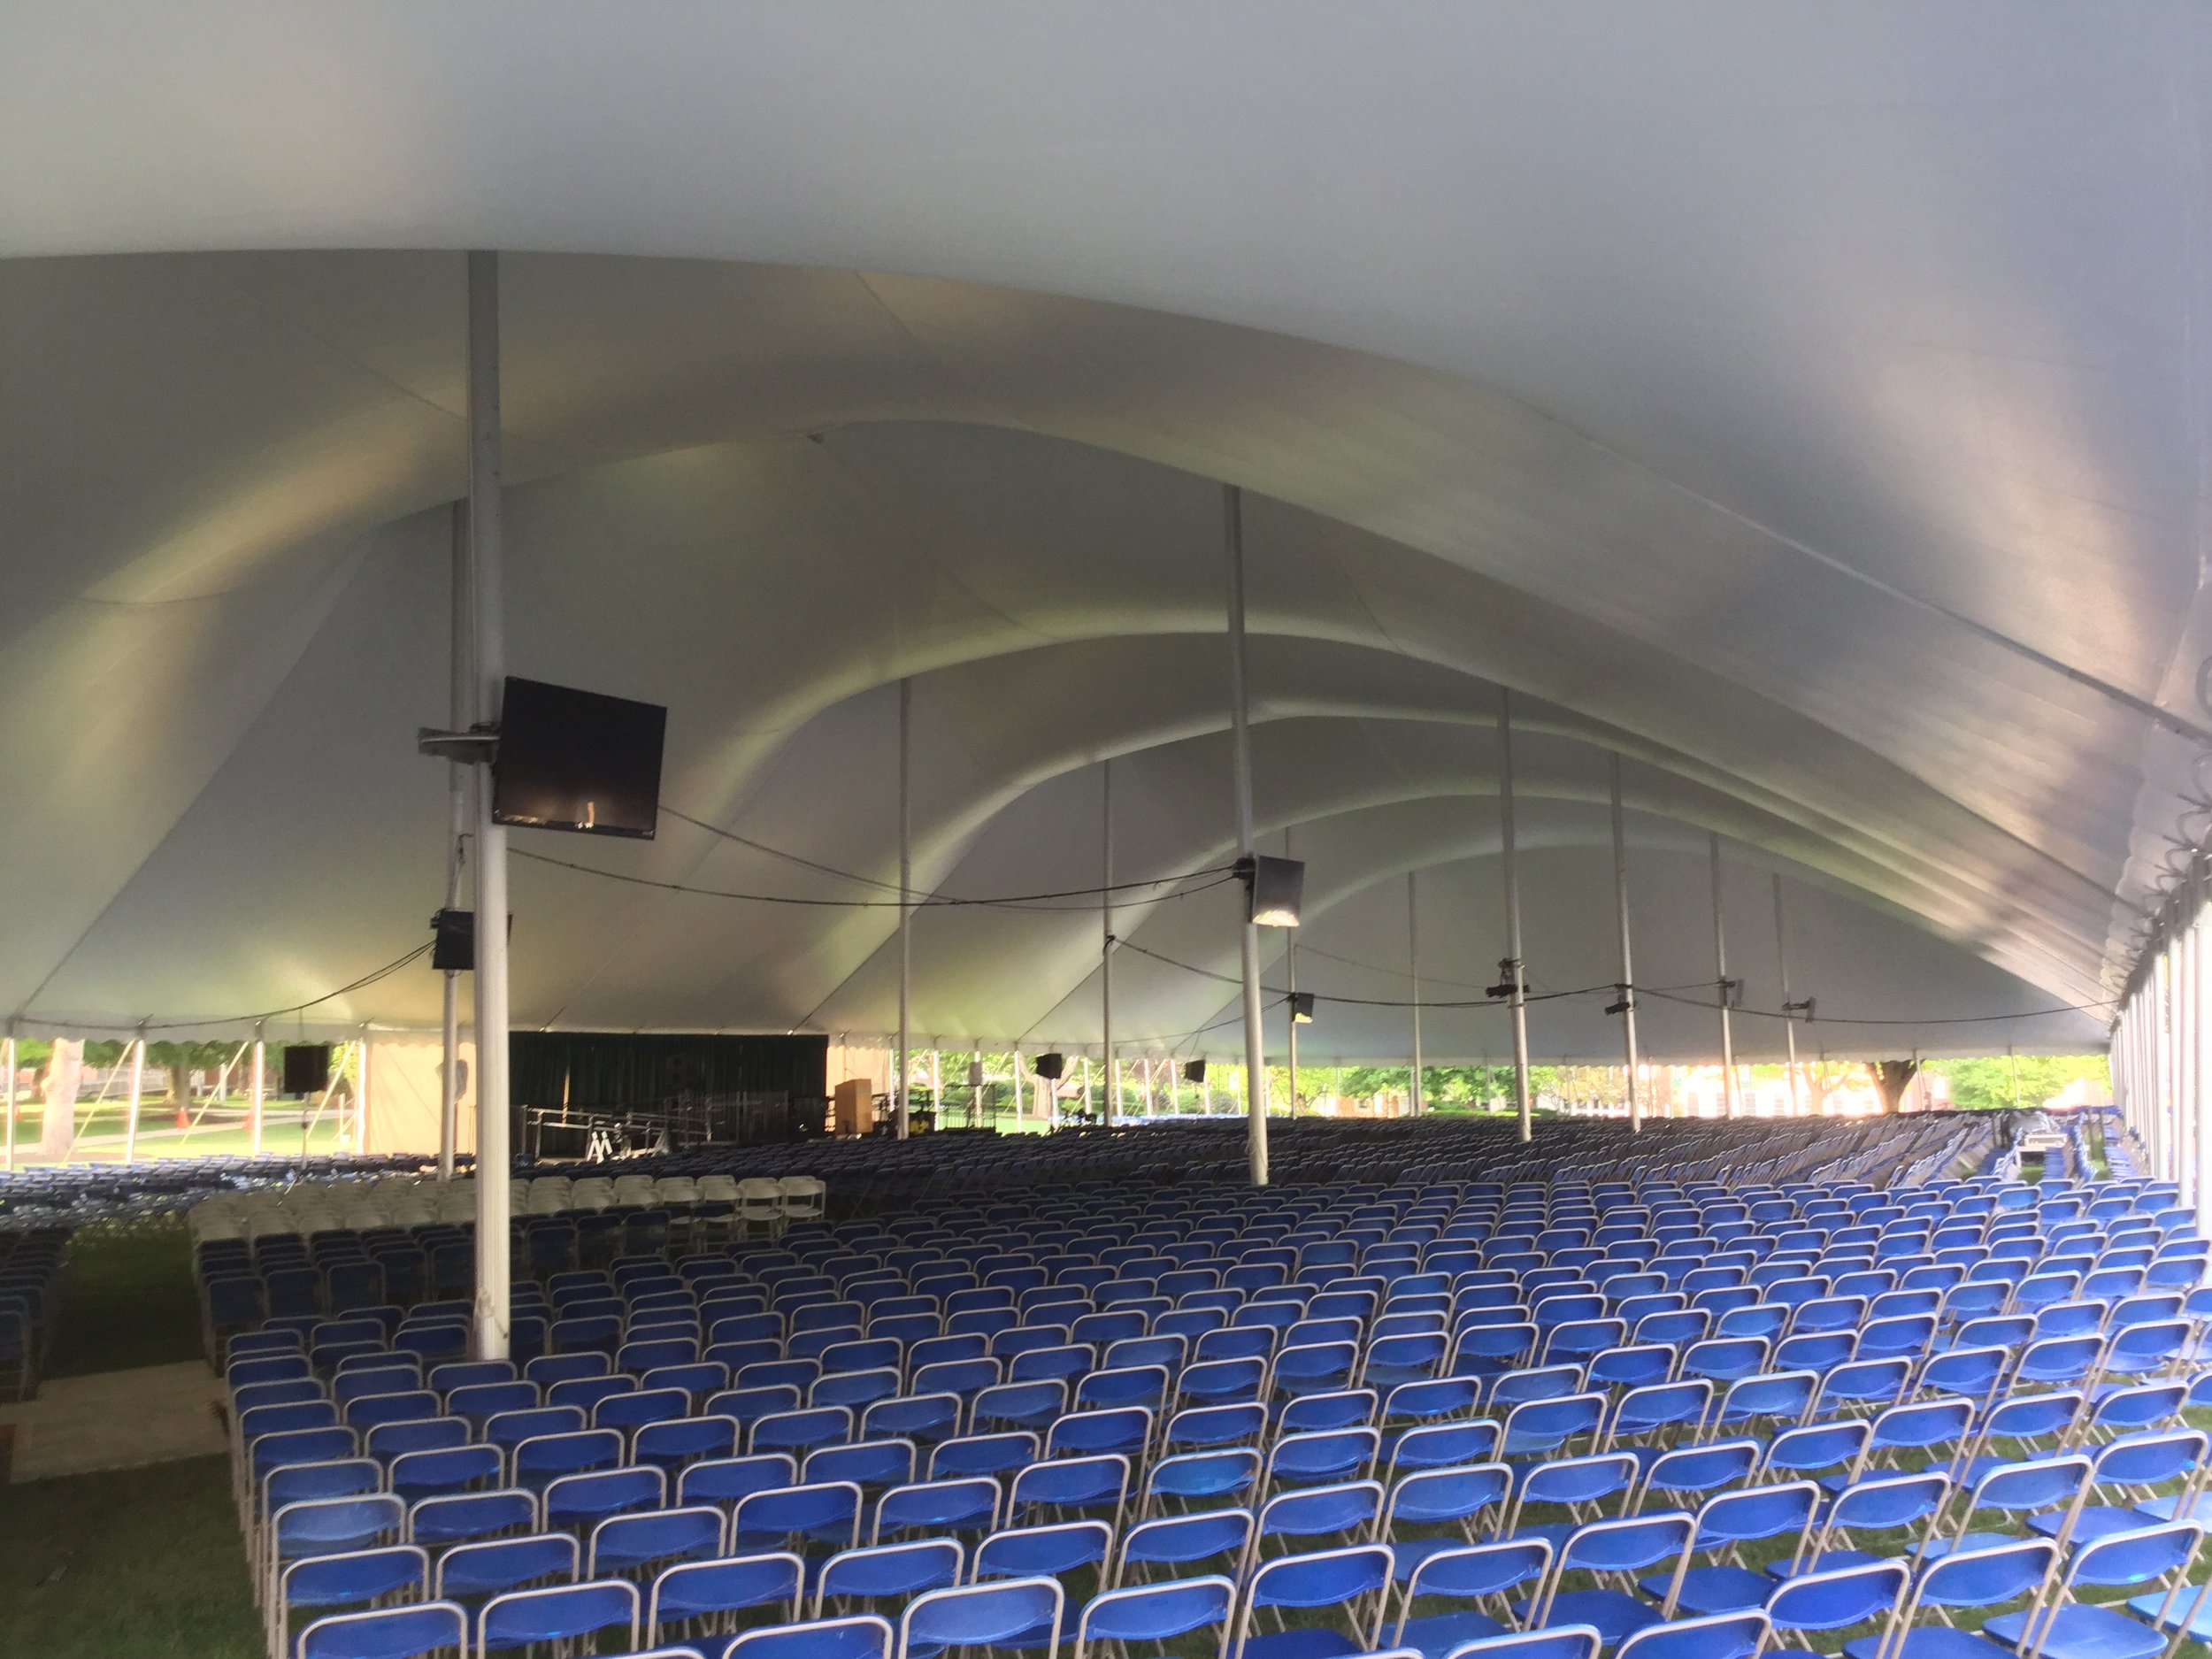 University graduation tent and seating